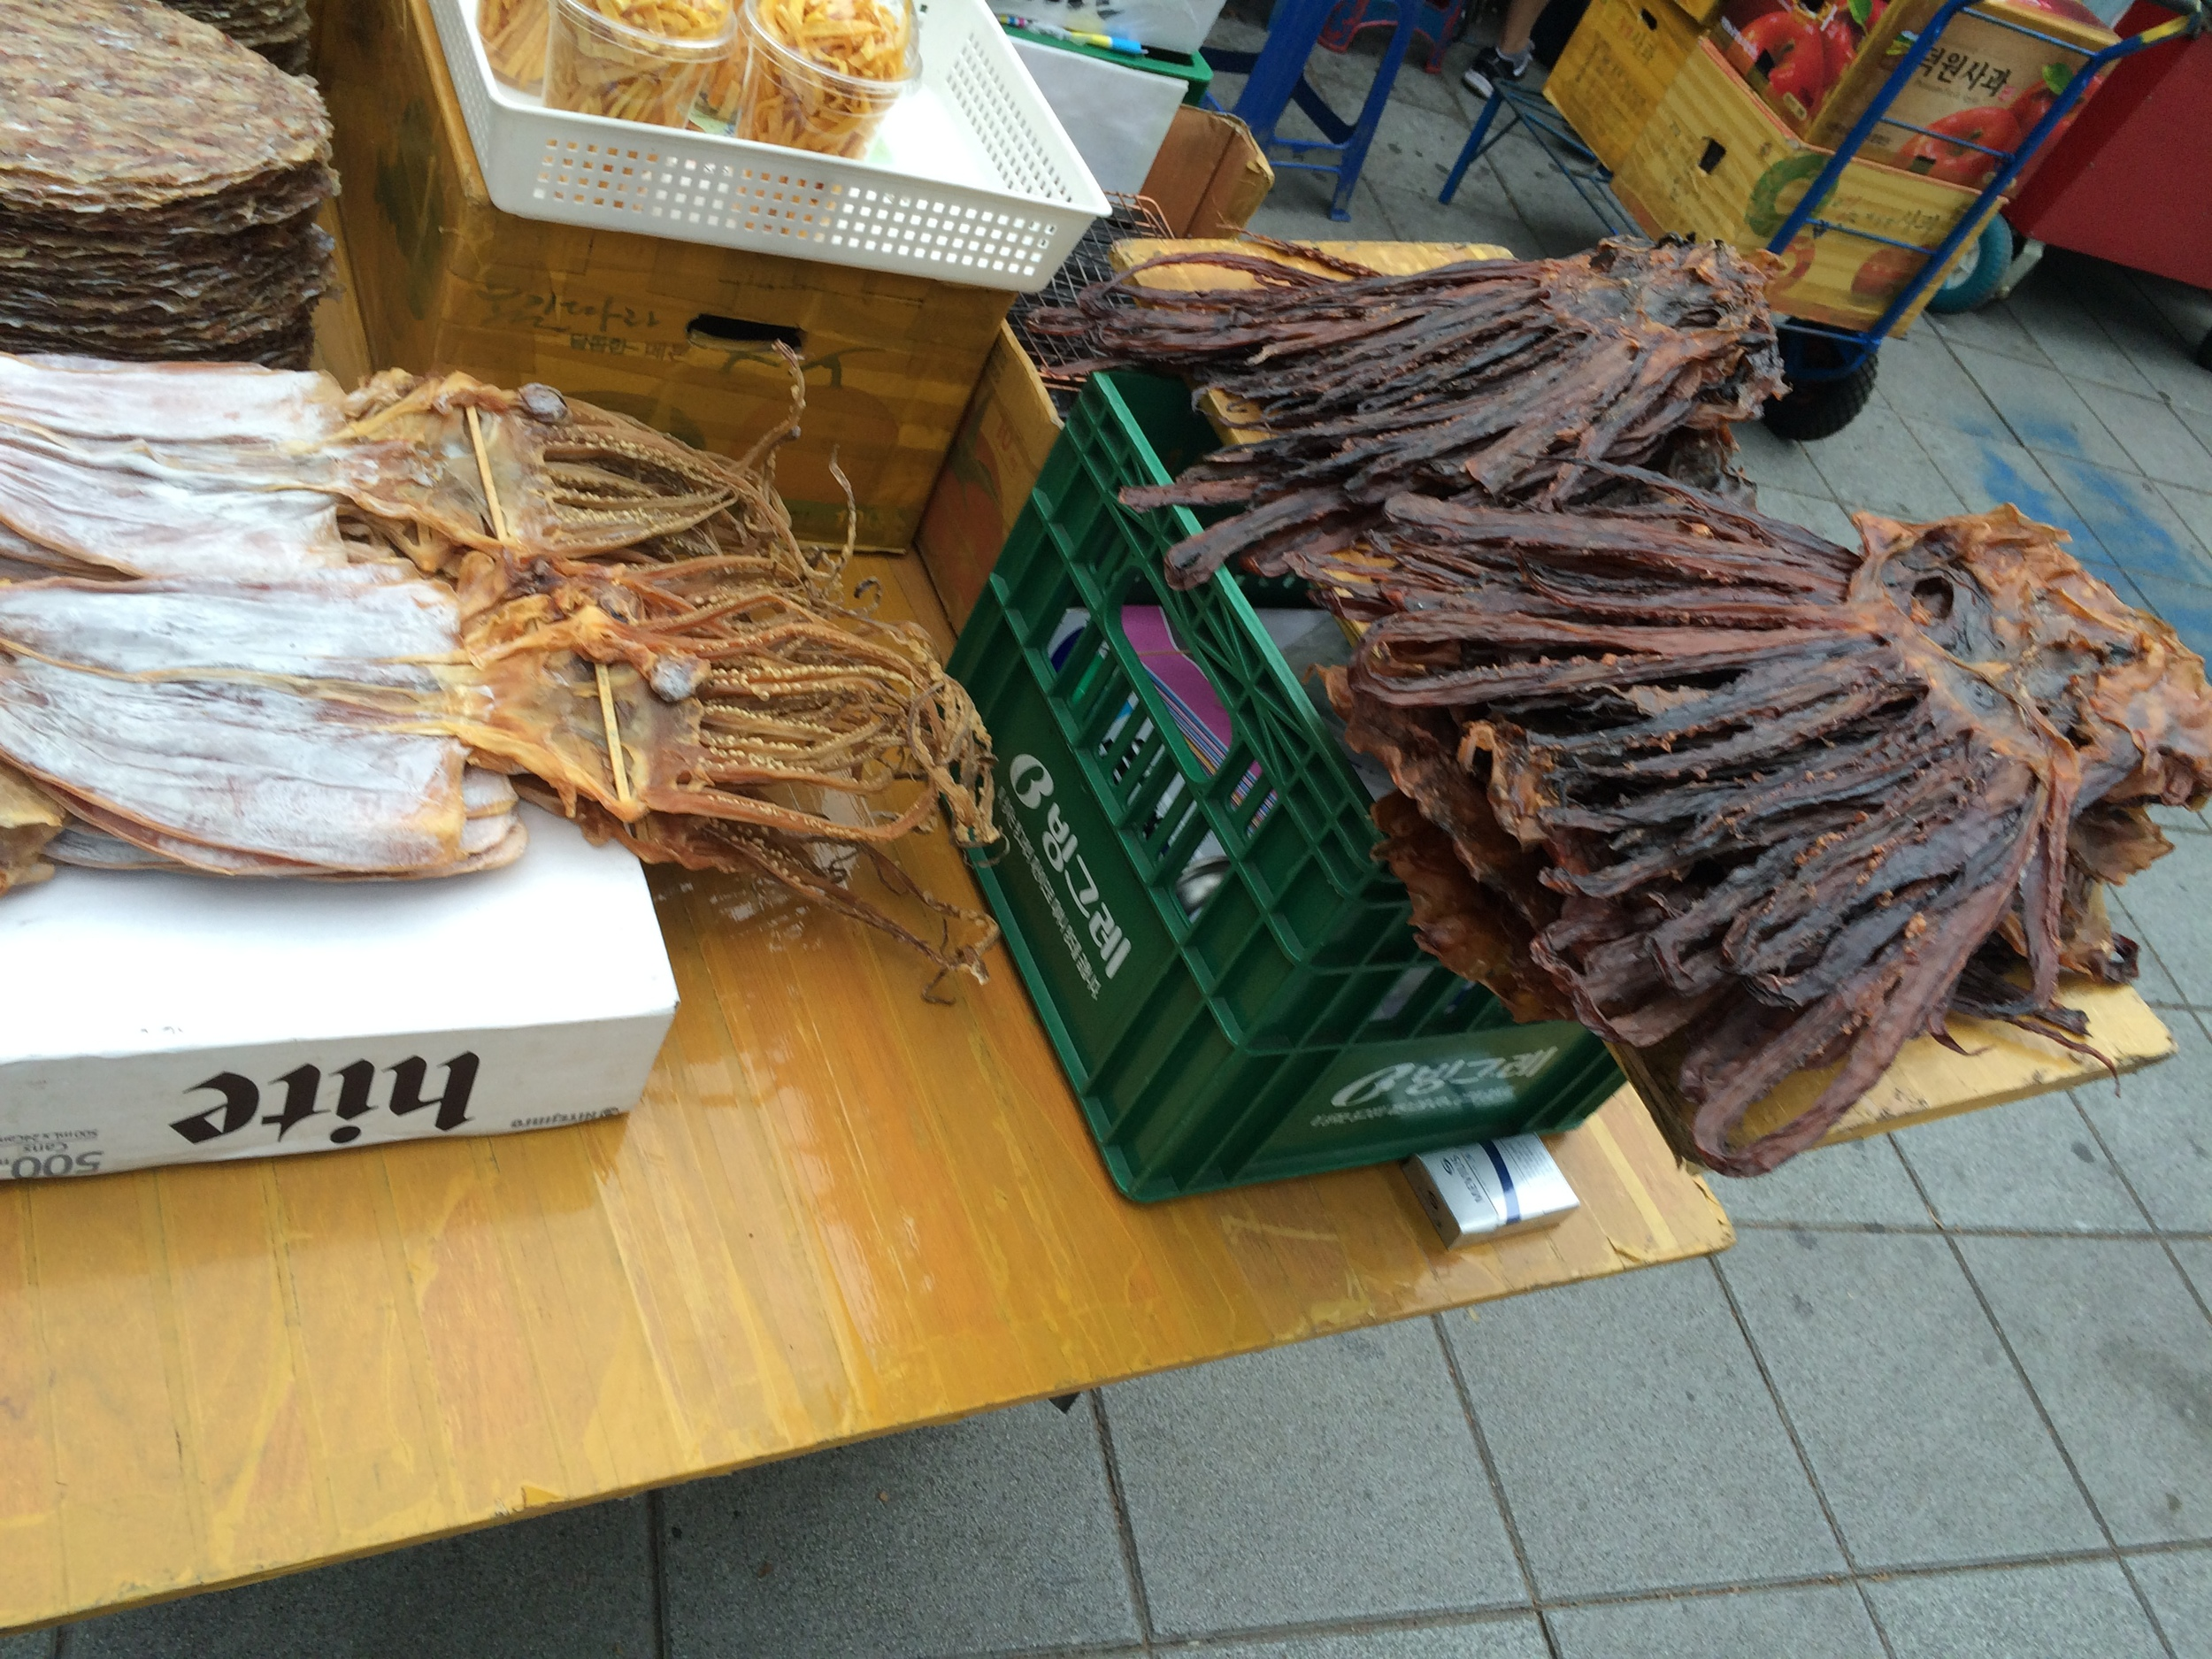 Korea's baseball game tradition? Squid jerky. (No, I didn't try it .... this time)